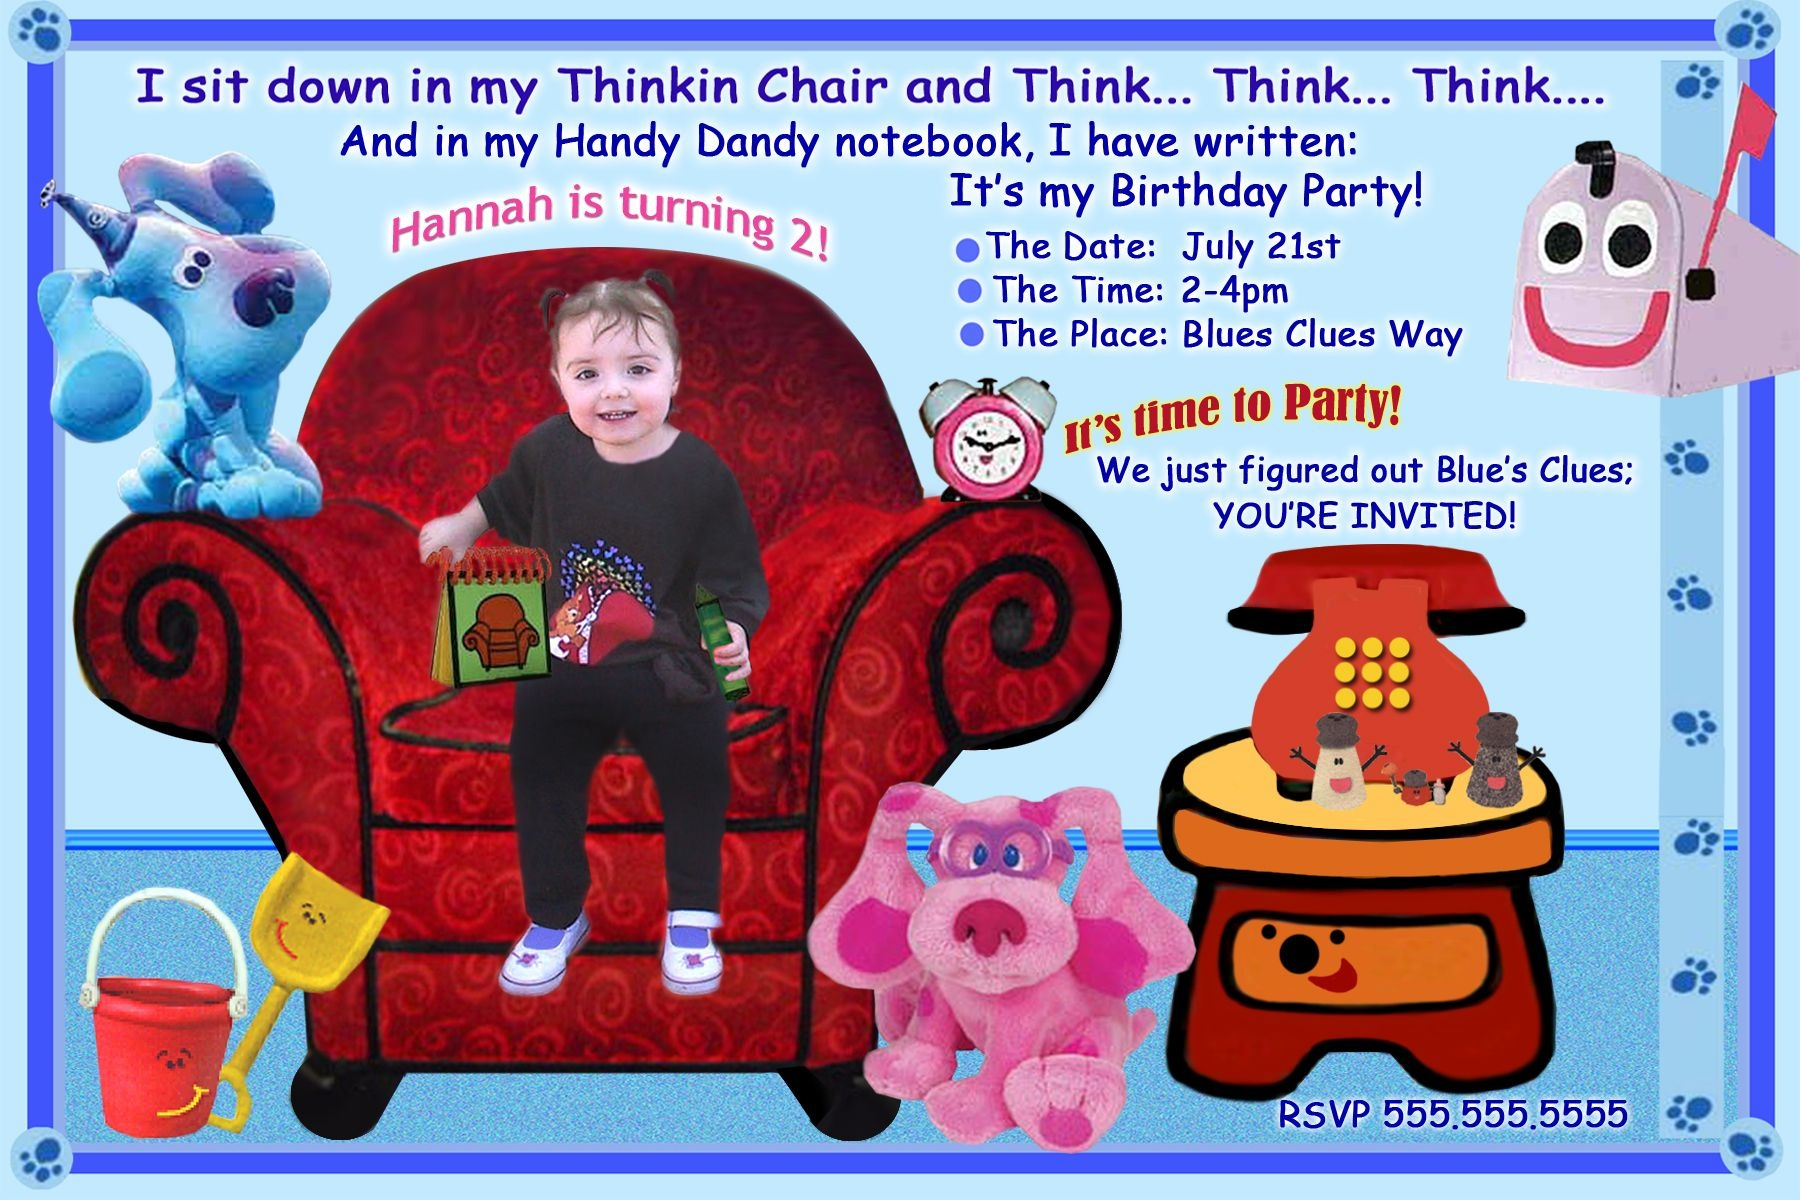 Free Printable Part Invites Link I Also Like The Idea Of